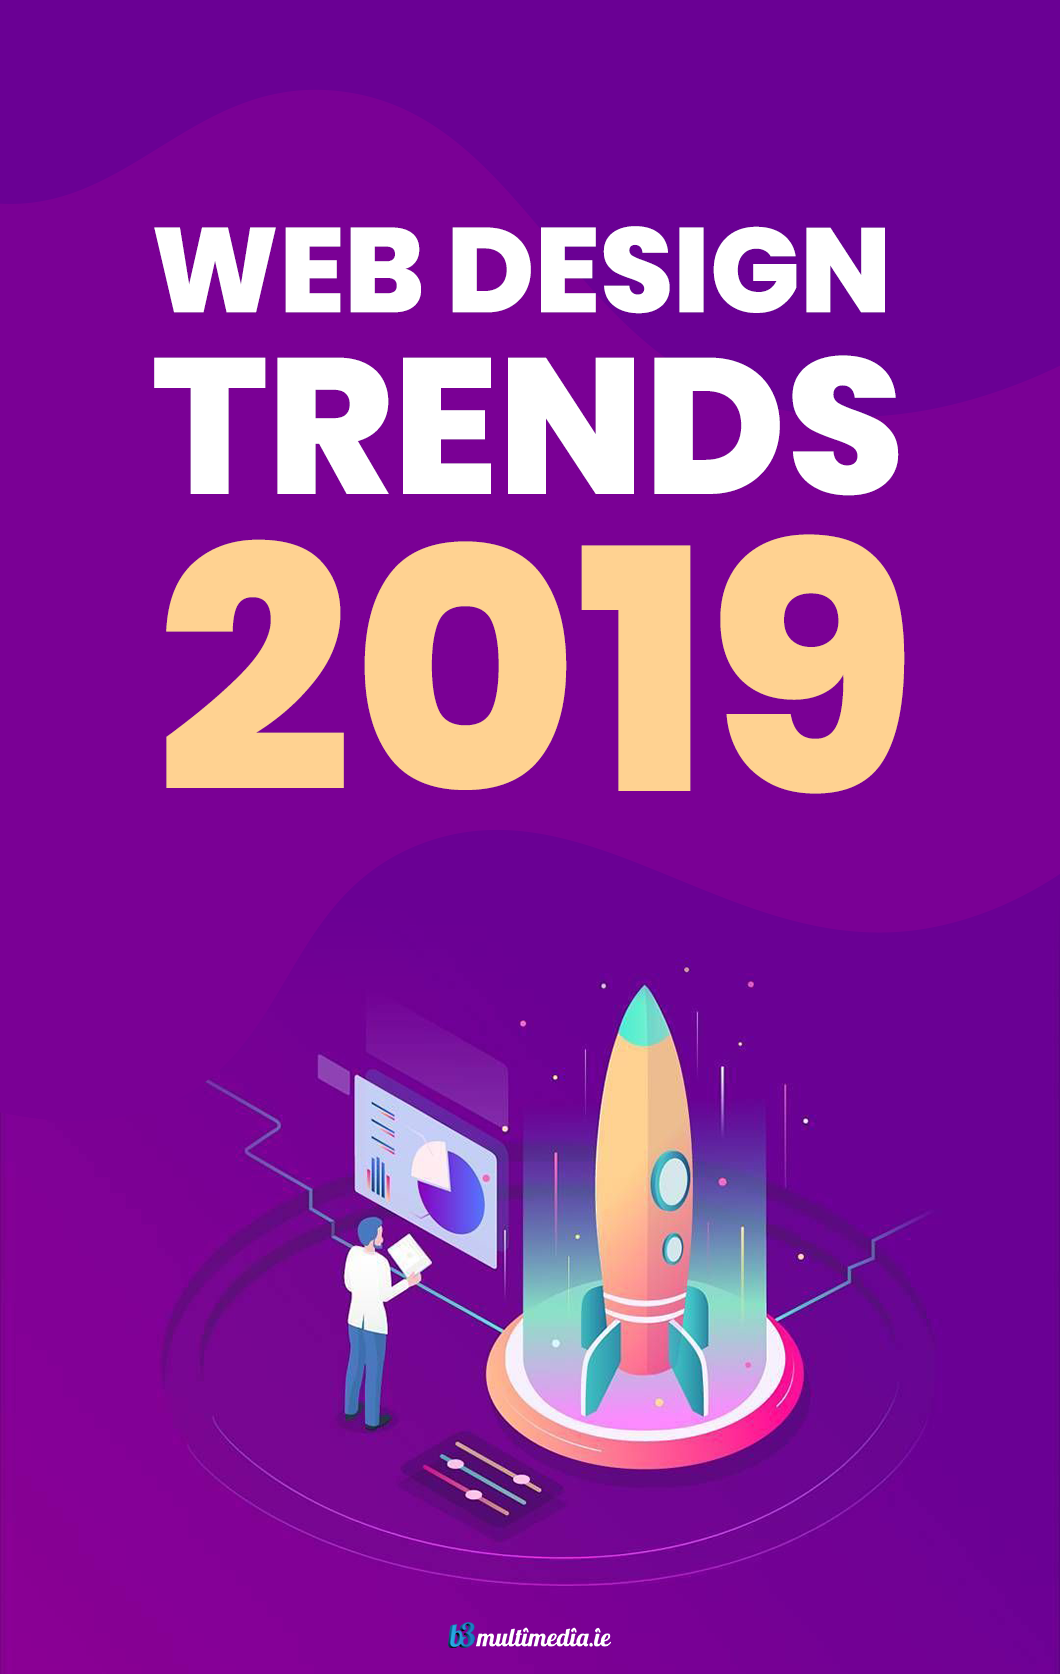 Web Design Trends That Will Dominate In 2019 B3 Multimedia Solutions Web Design Trends Web Design Tips Web Design